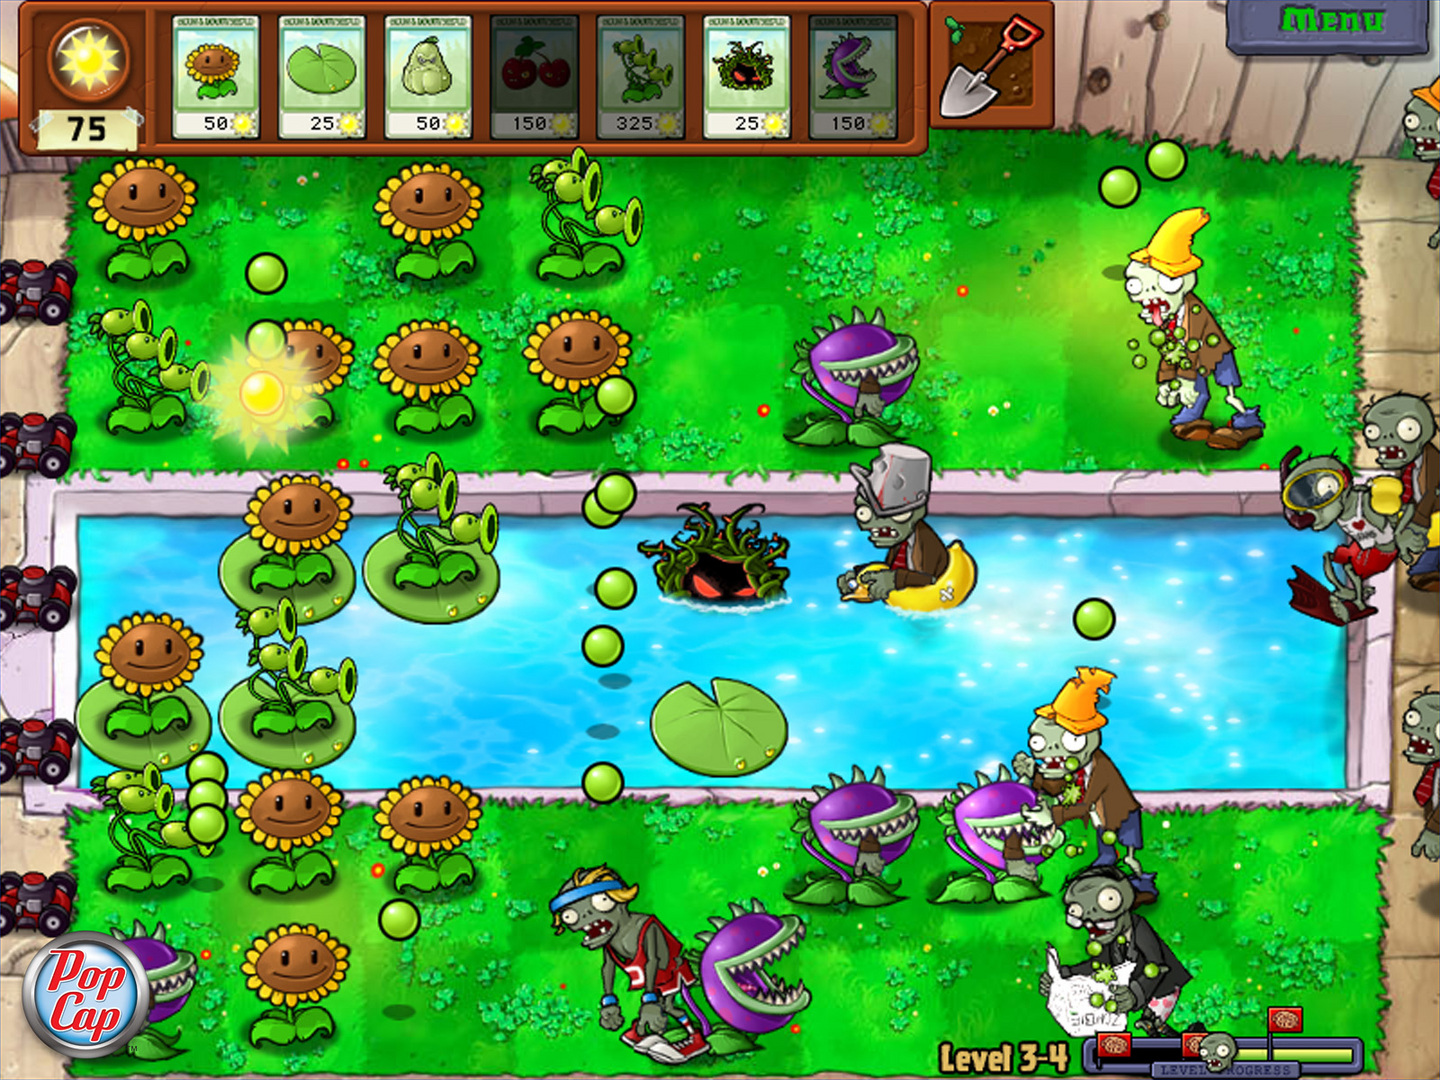 Plants vs. Zombies. Dig into the fun-dead action hit that's won over 30 Game of  the Year awards and counting! It started as a PC/Mac game, and quickly became  ...